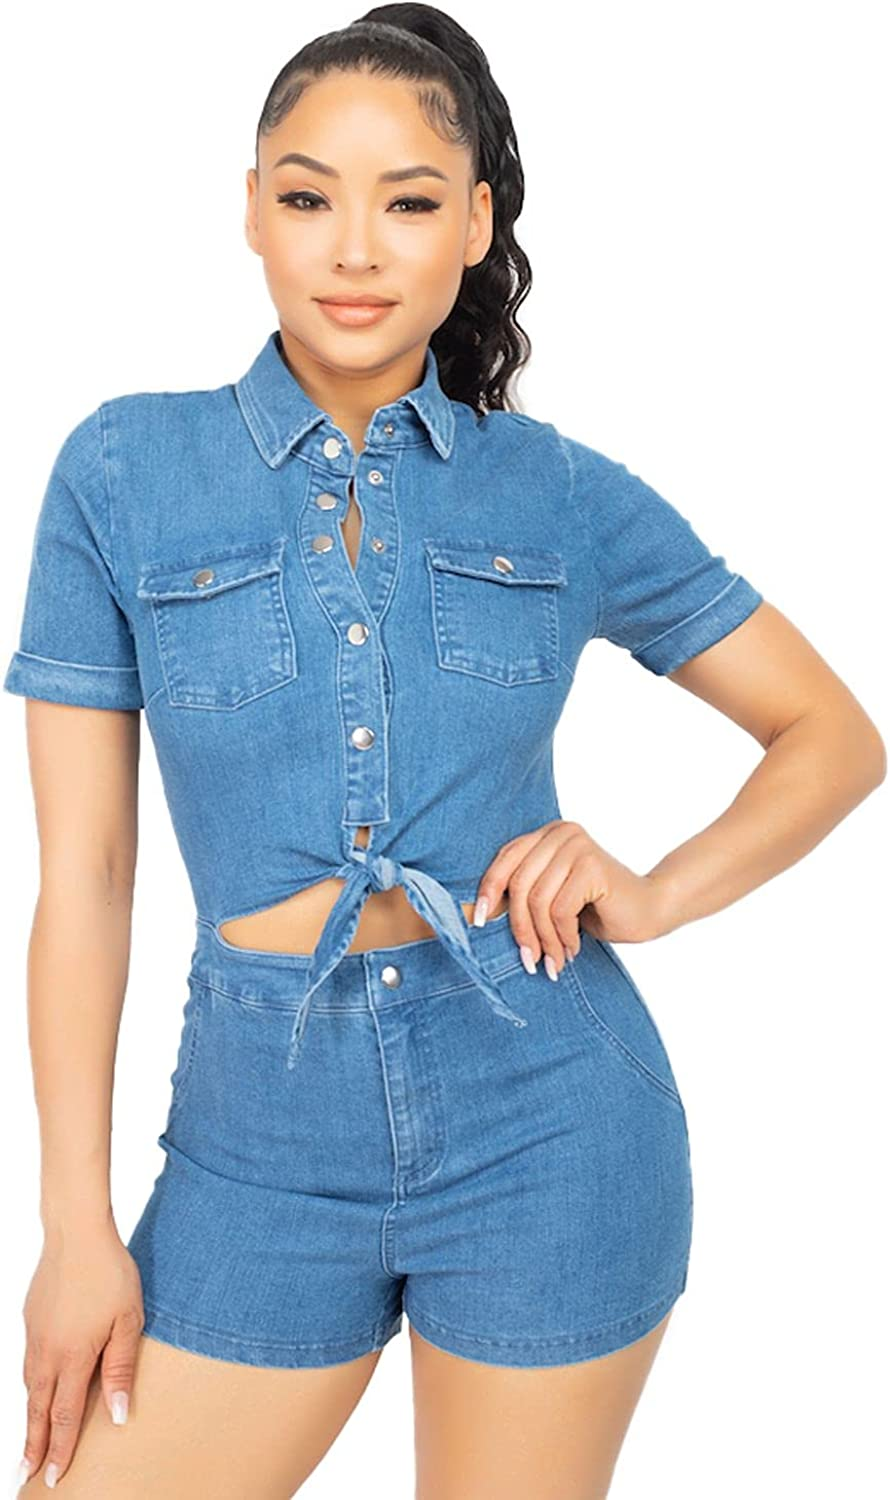 Blue Age Women's Denim Rompers Bottom Sets Free shipping anywhere in the nation Jean Top Limited time for free shipping and